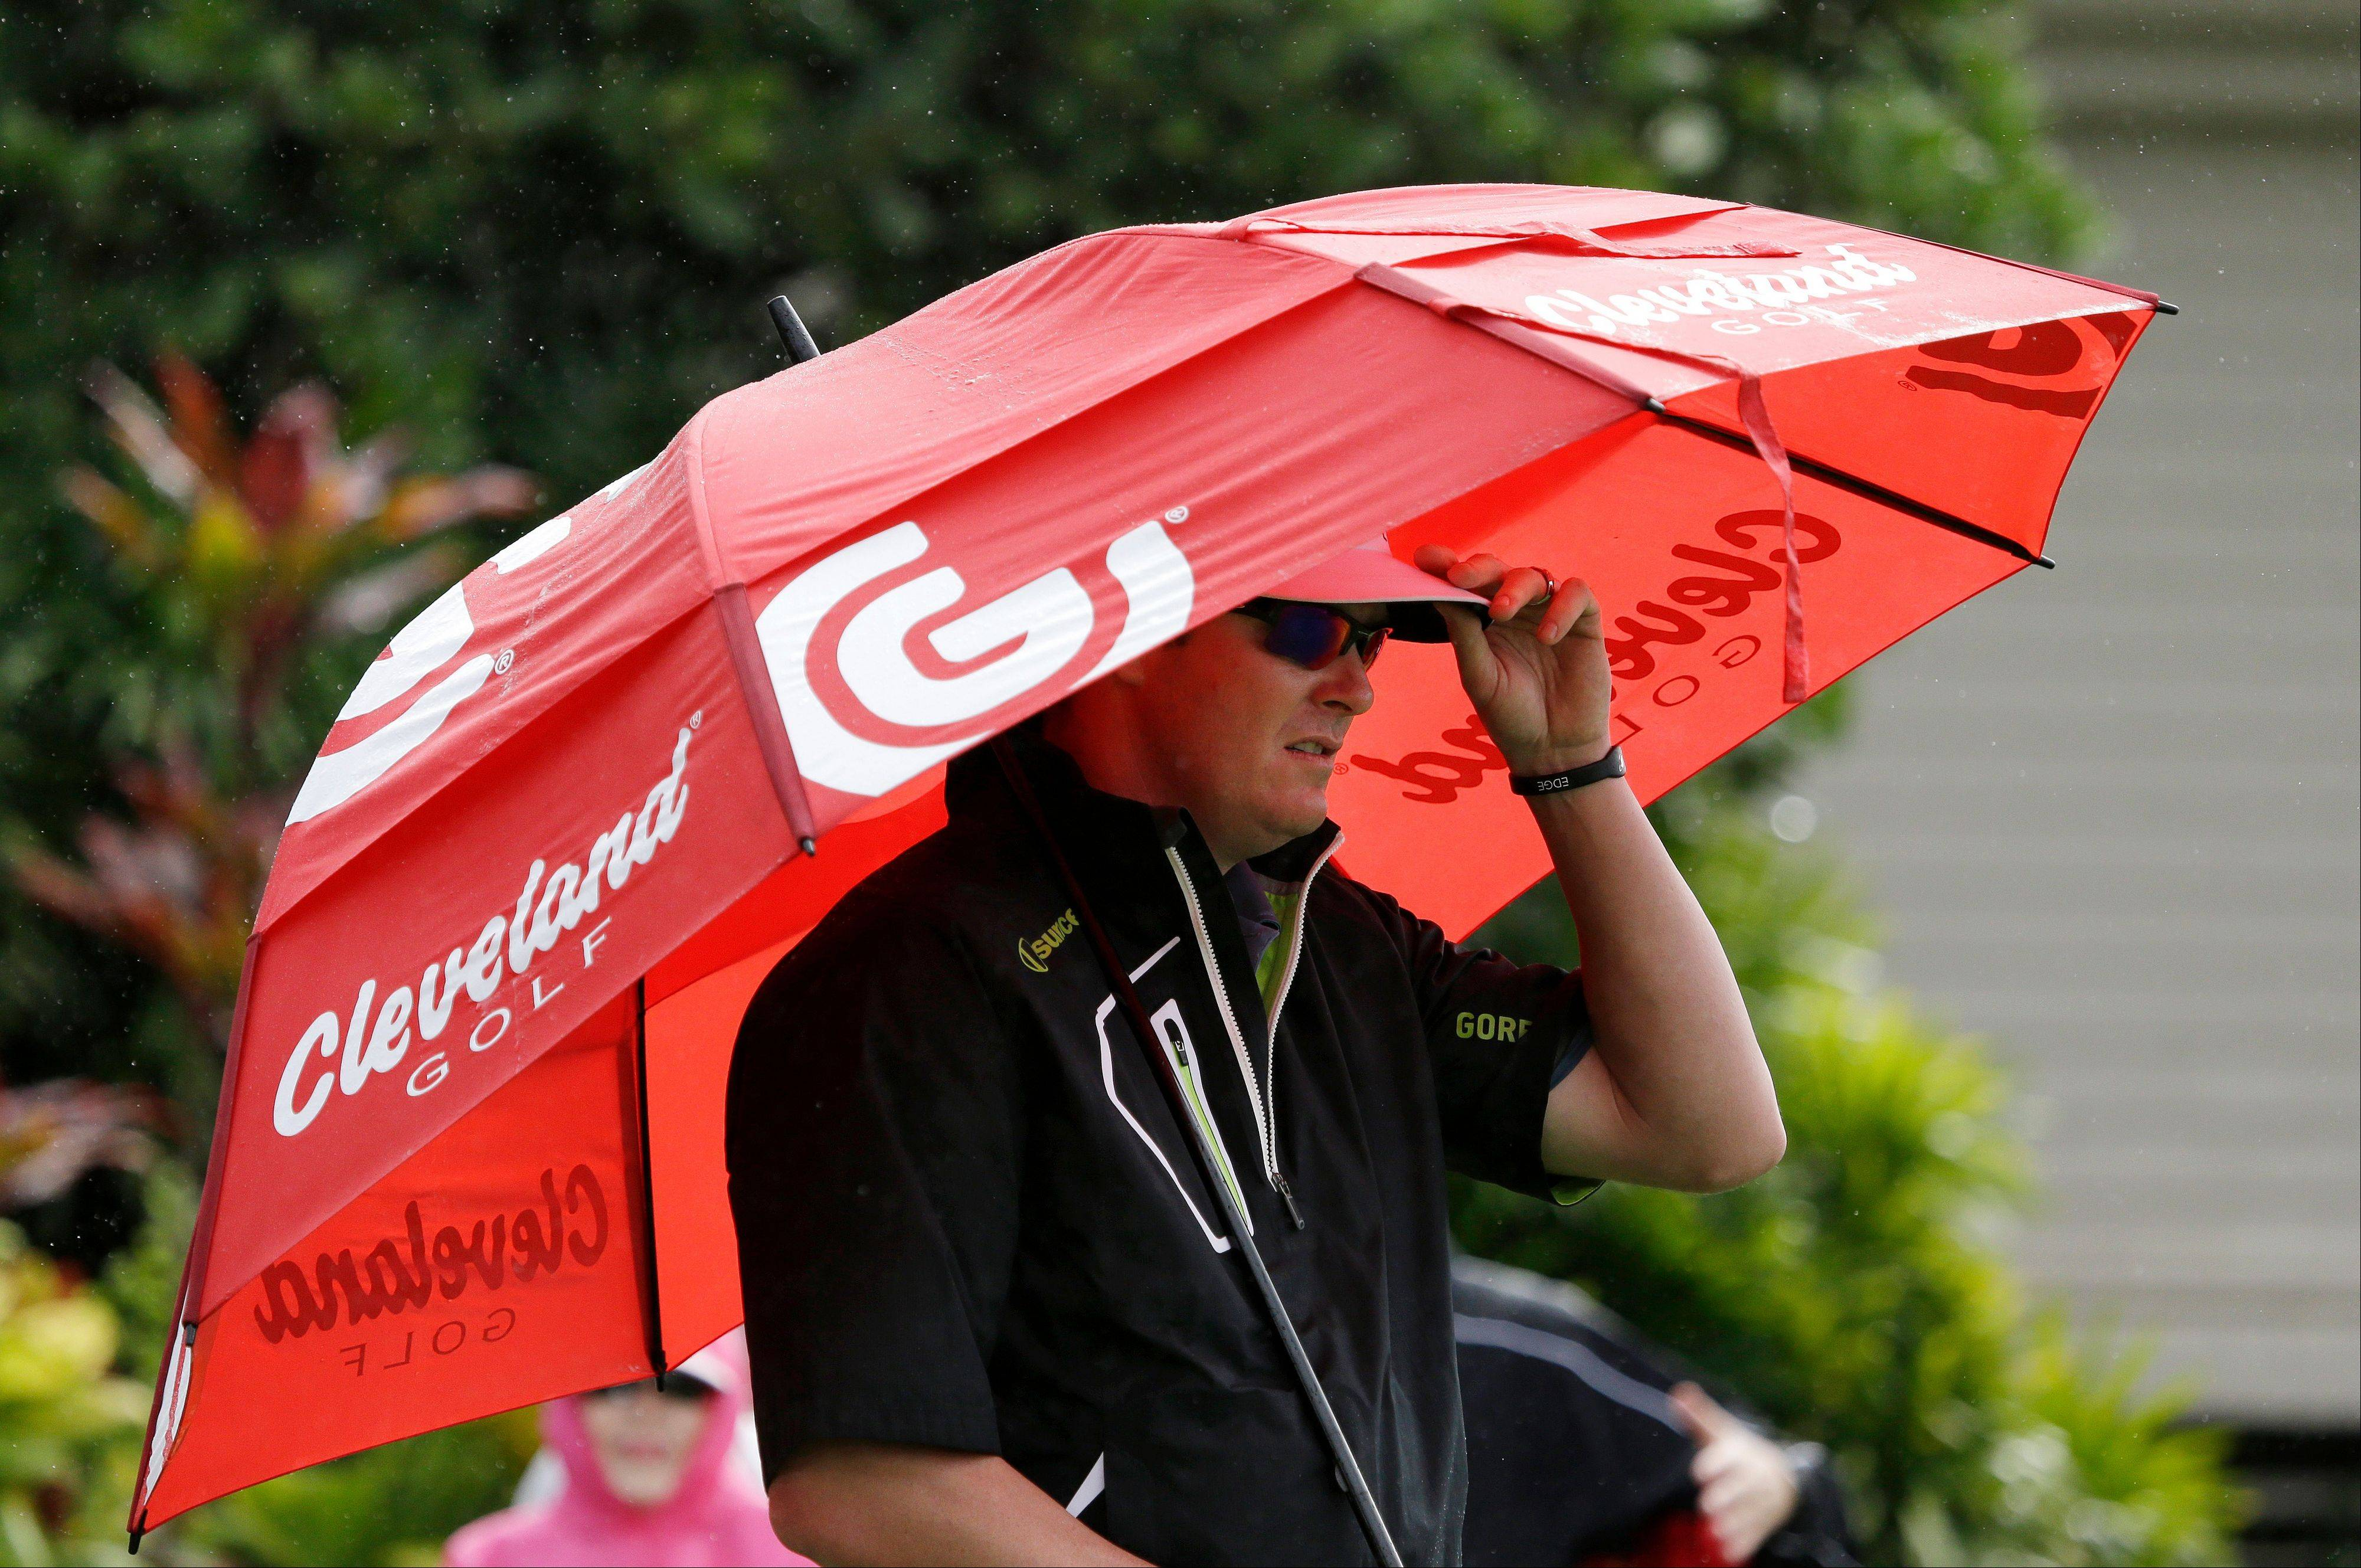 Charlie Beljan holds an umbrella as he waits his turn to tee off in the first round at the Tournament of Champions golf tournament on Friday, Jan. 4, 2013, in Kapalua, Hawaii.